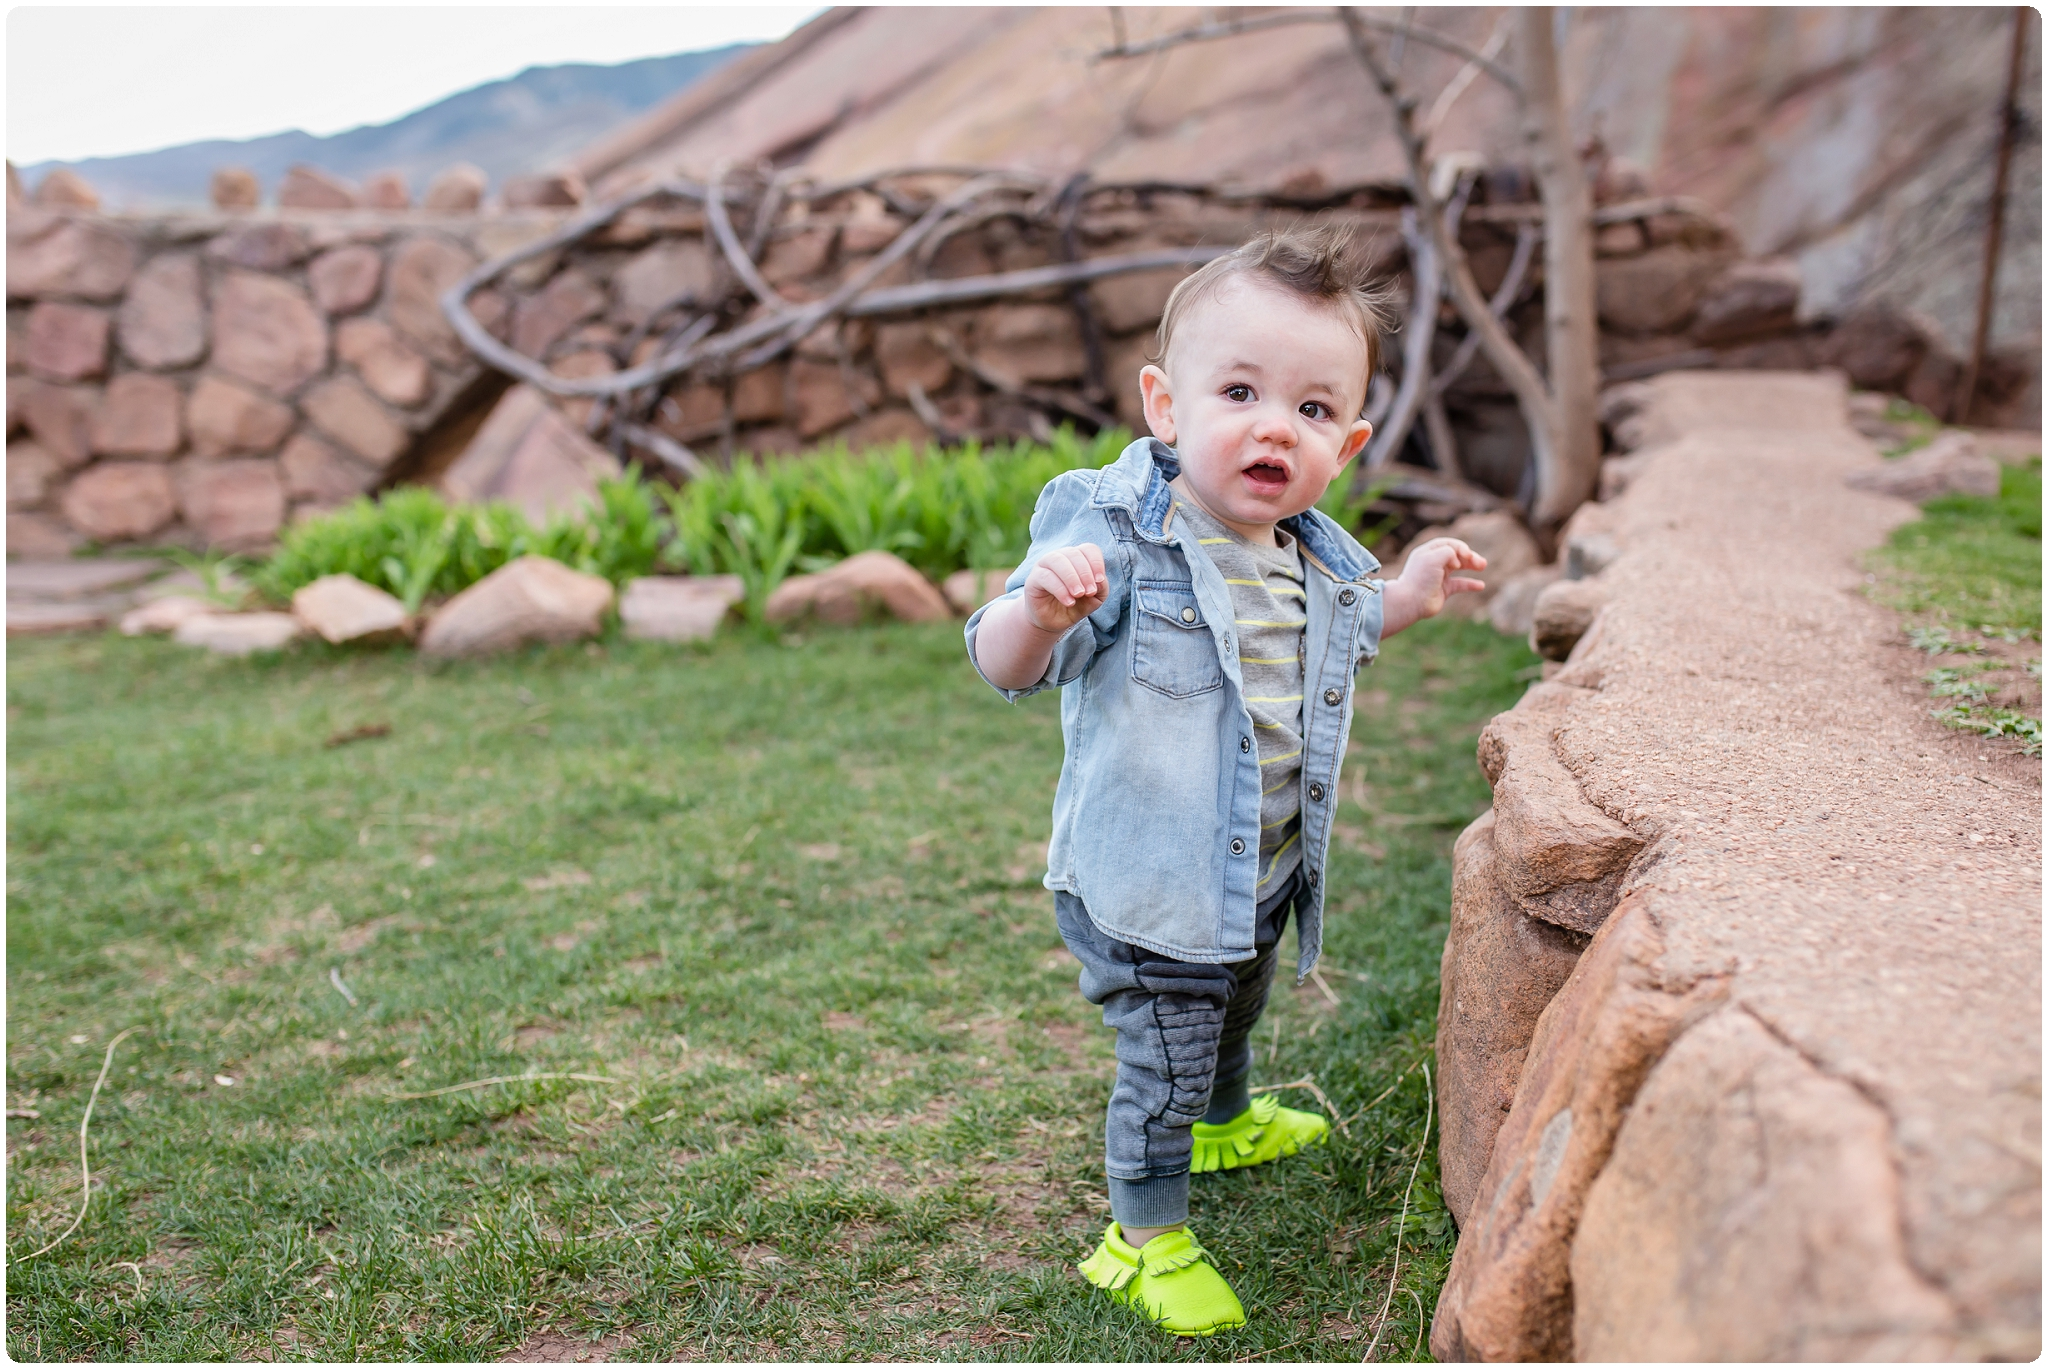 Baby Davis is one, at Red Rocks Amphitheater